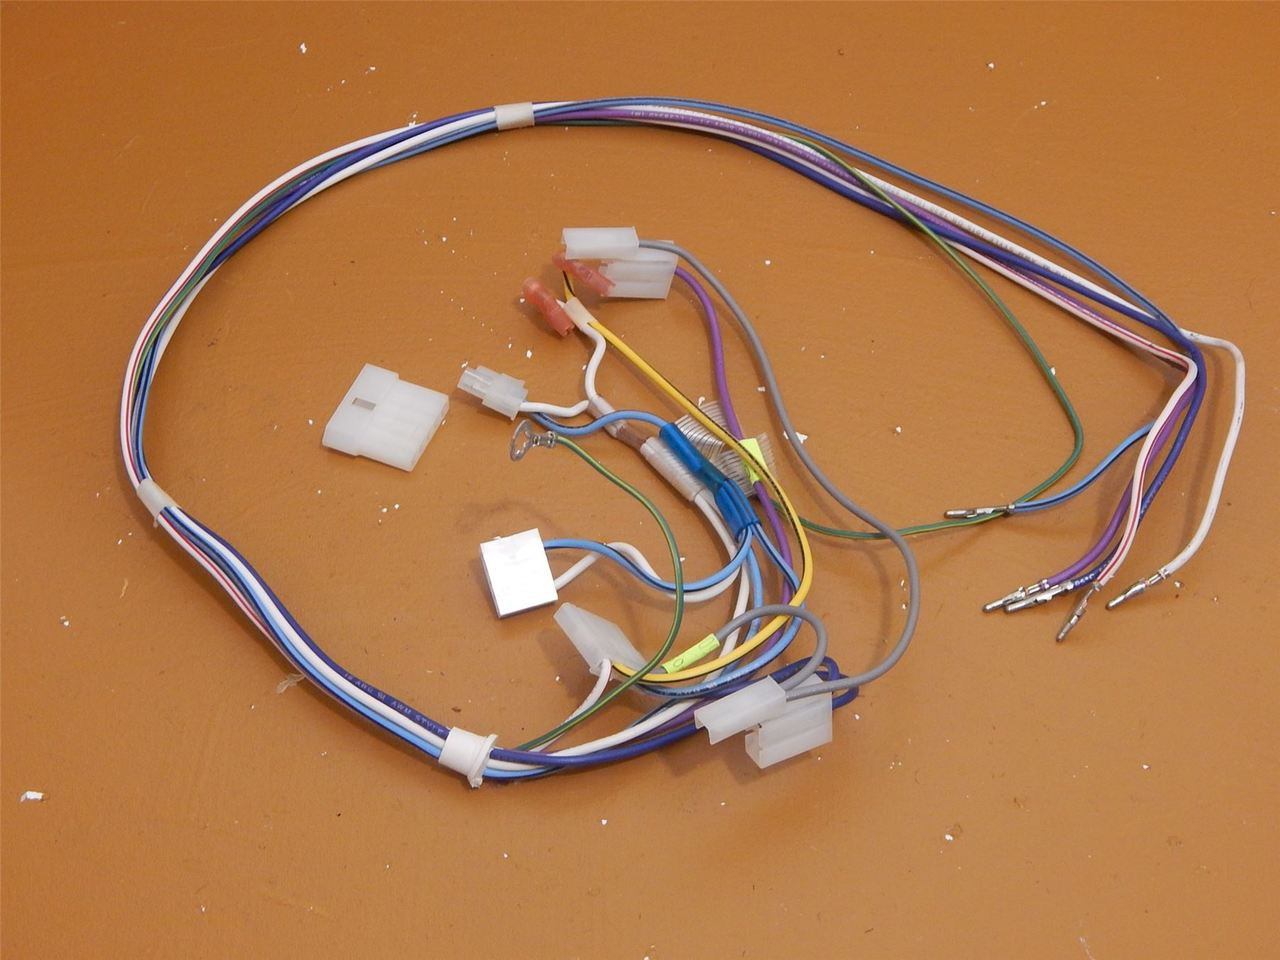 medium resolution of whirlpool side by side refrigerator ed5phexnq00 dispenser wire harness 2311641 ice cold beer appliance parts